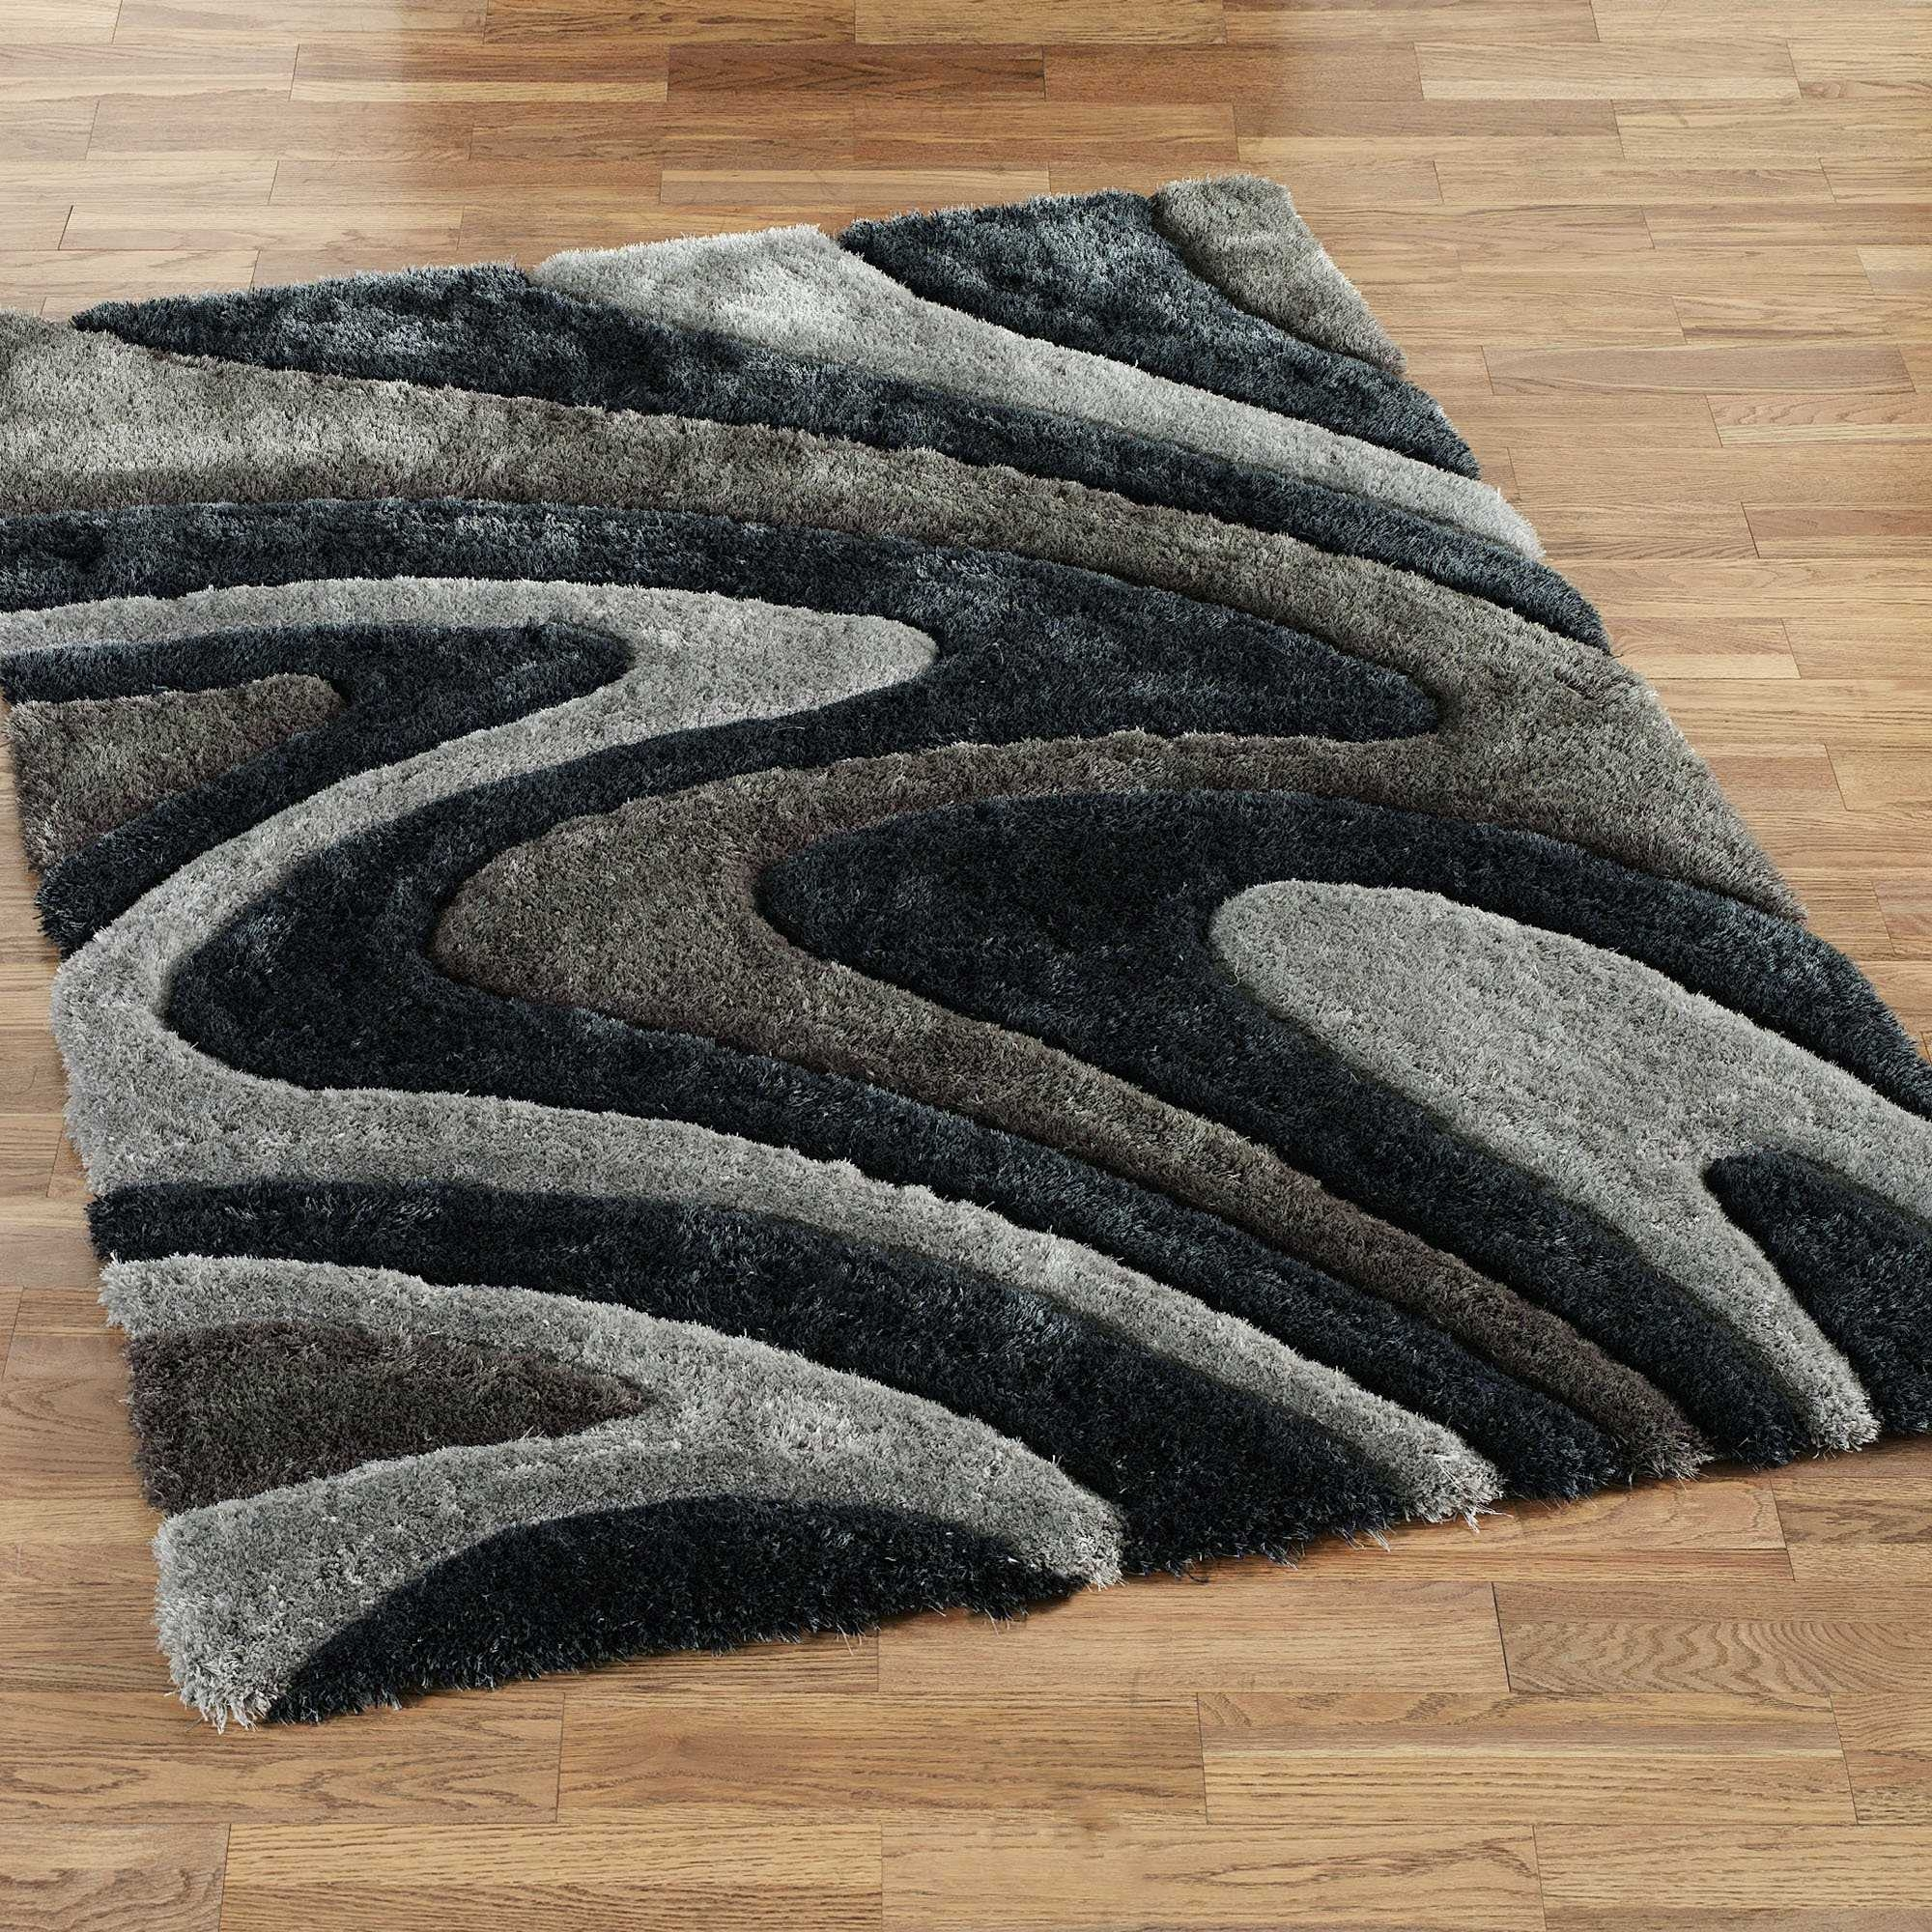 Best Of Wool Shag Area Rug